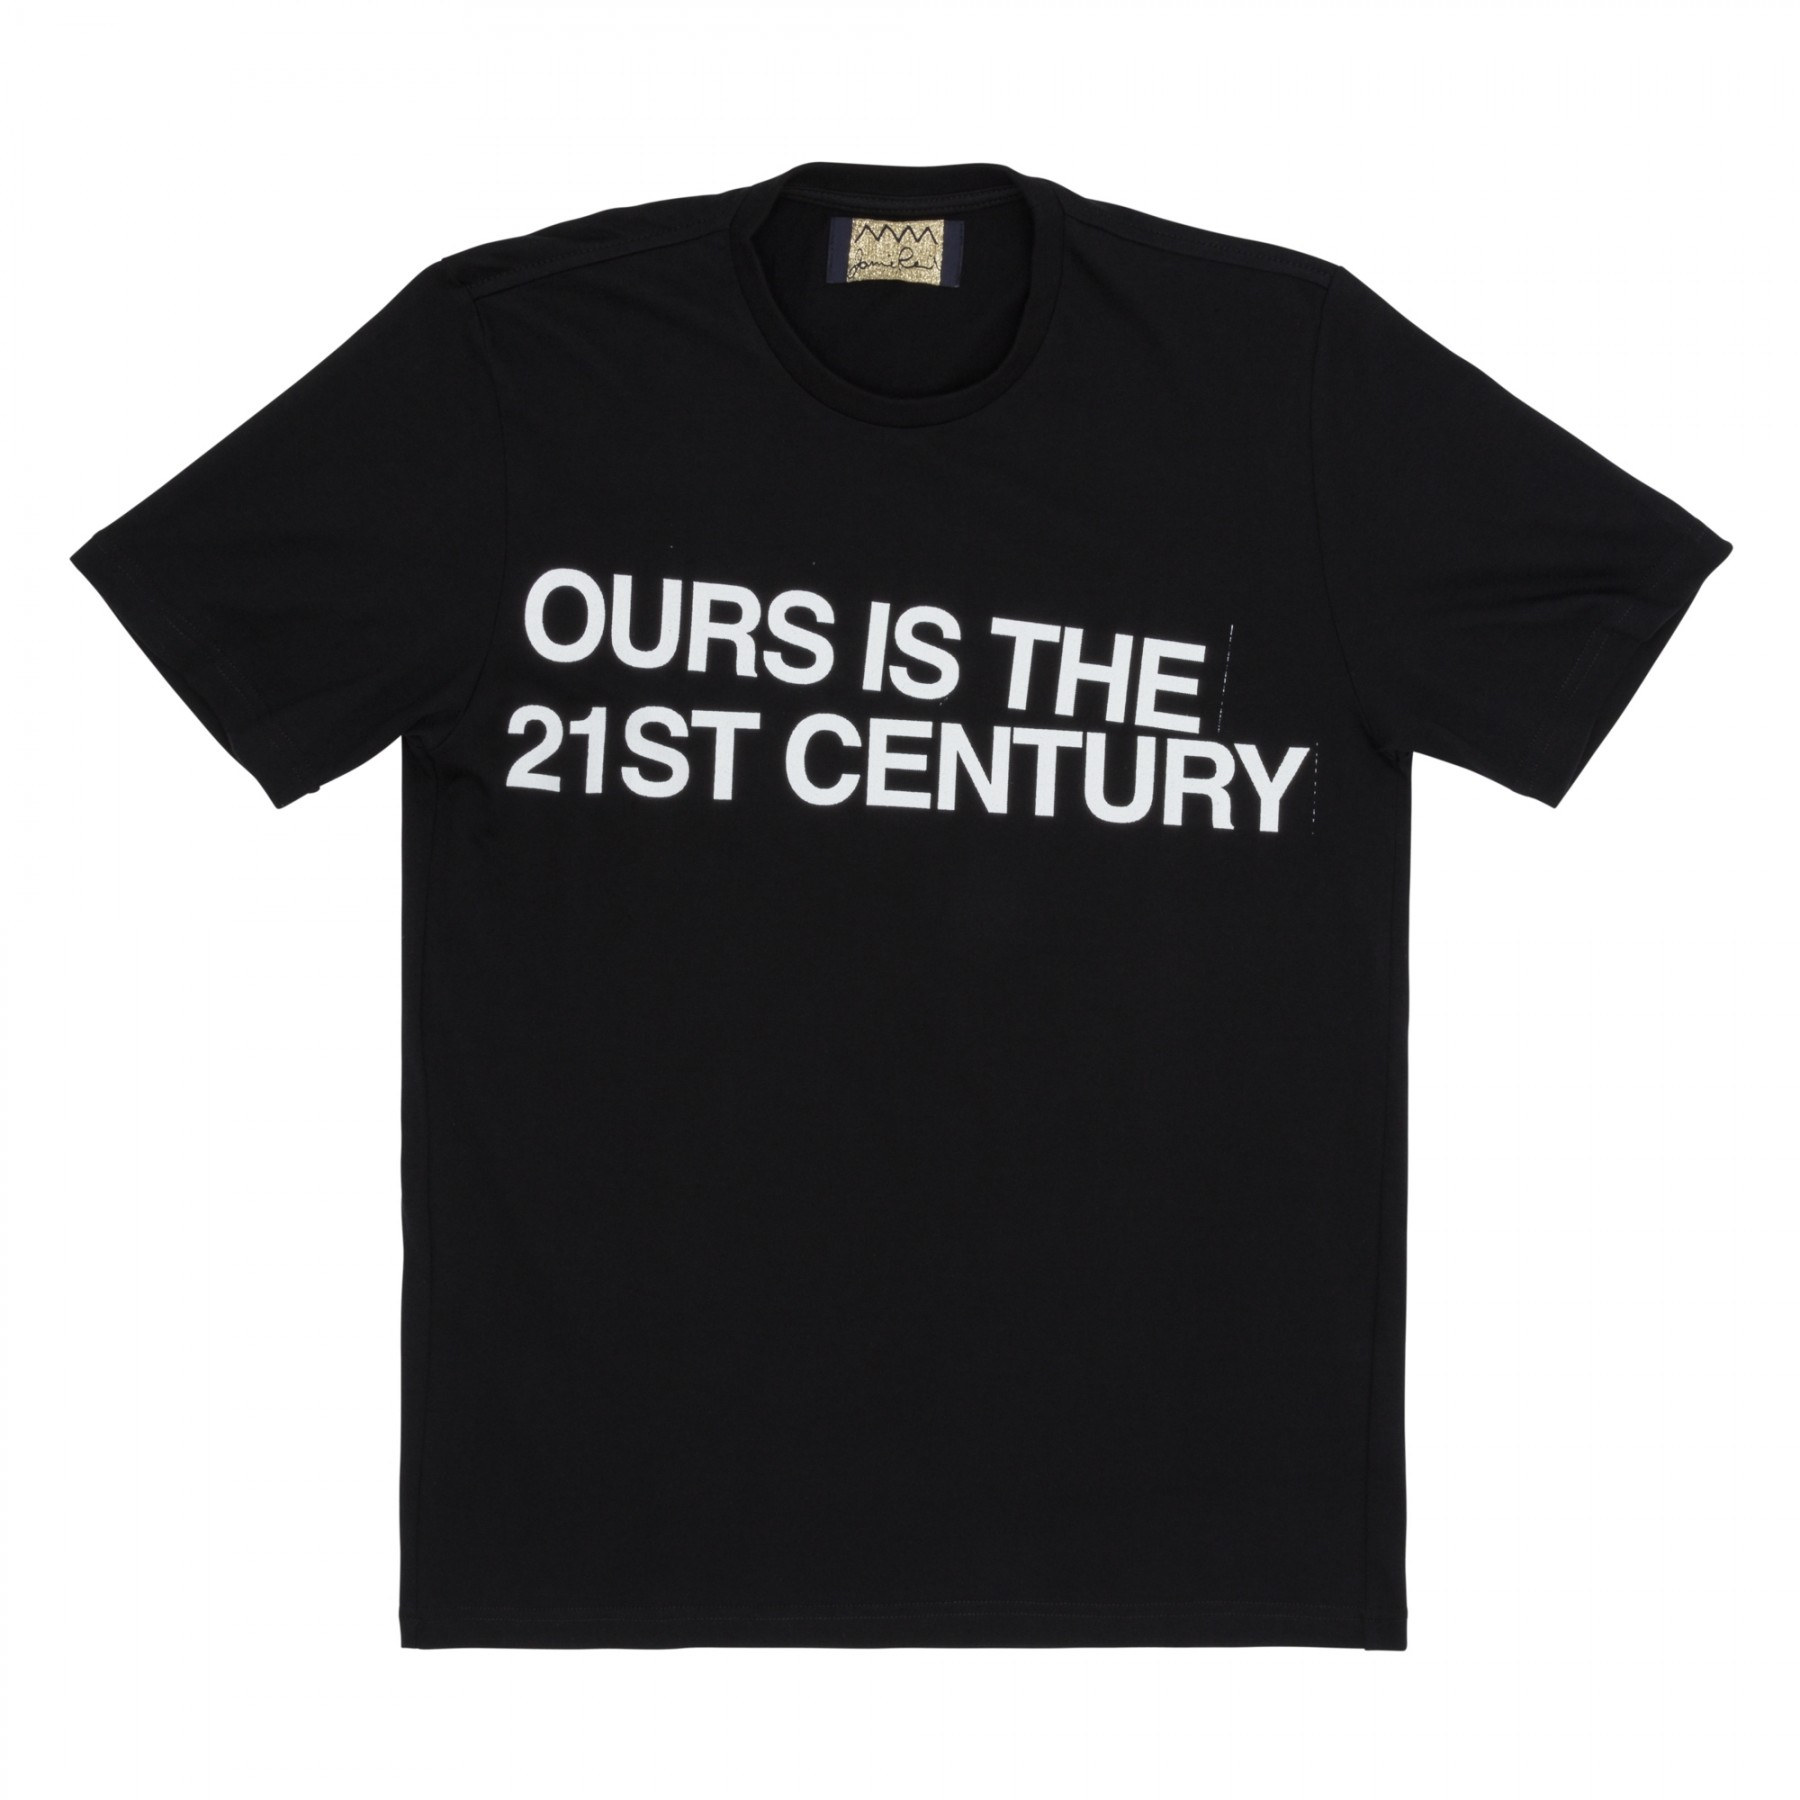 4. Ours is the 21st Century Tee - Brand: Ragged KingdomPrice: $70.00